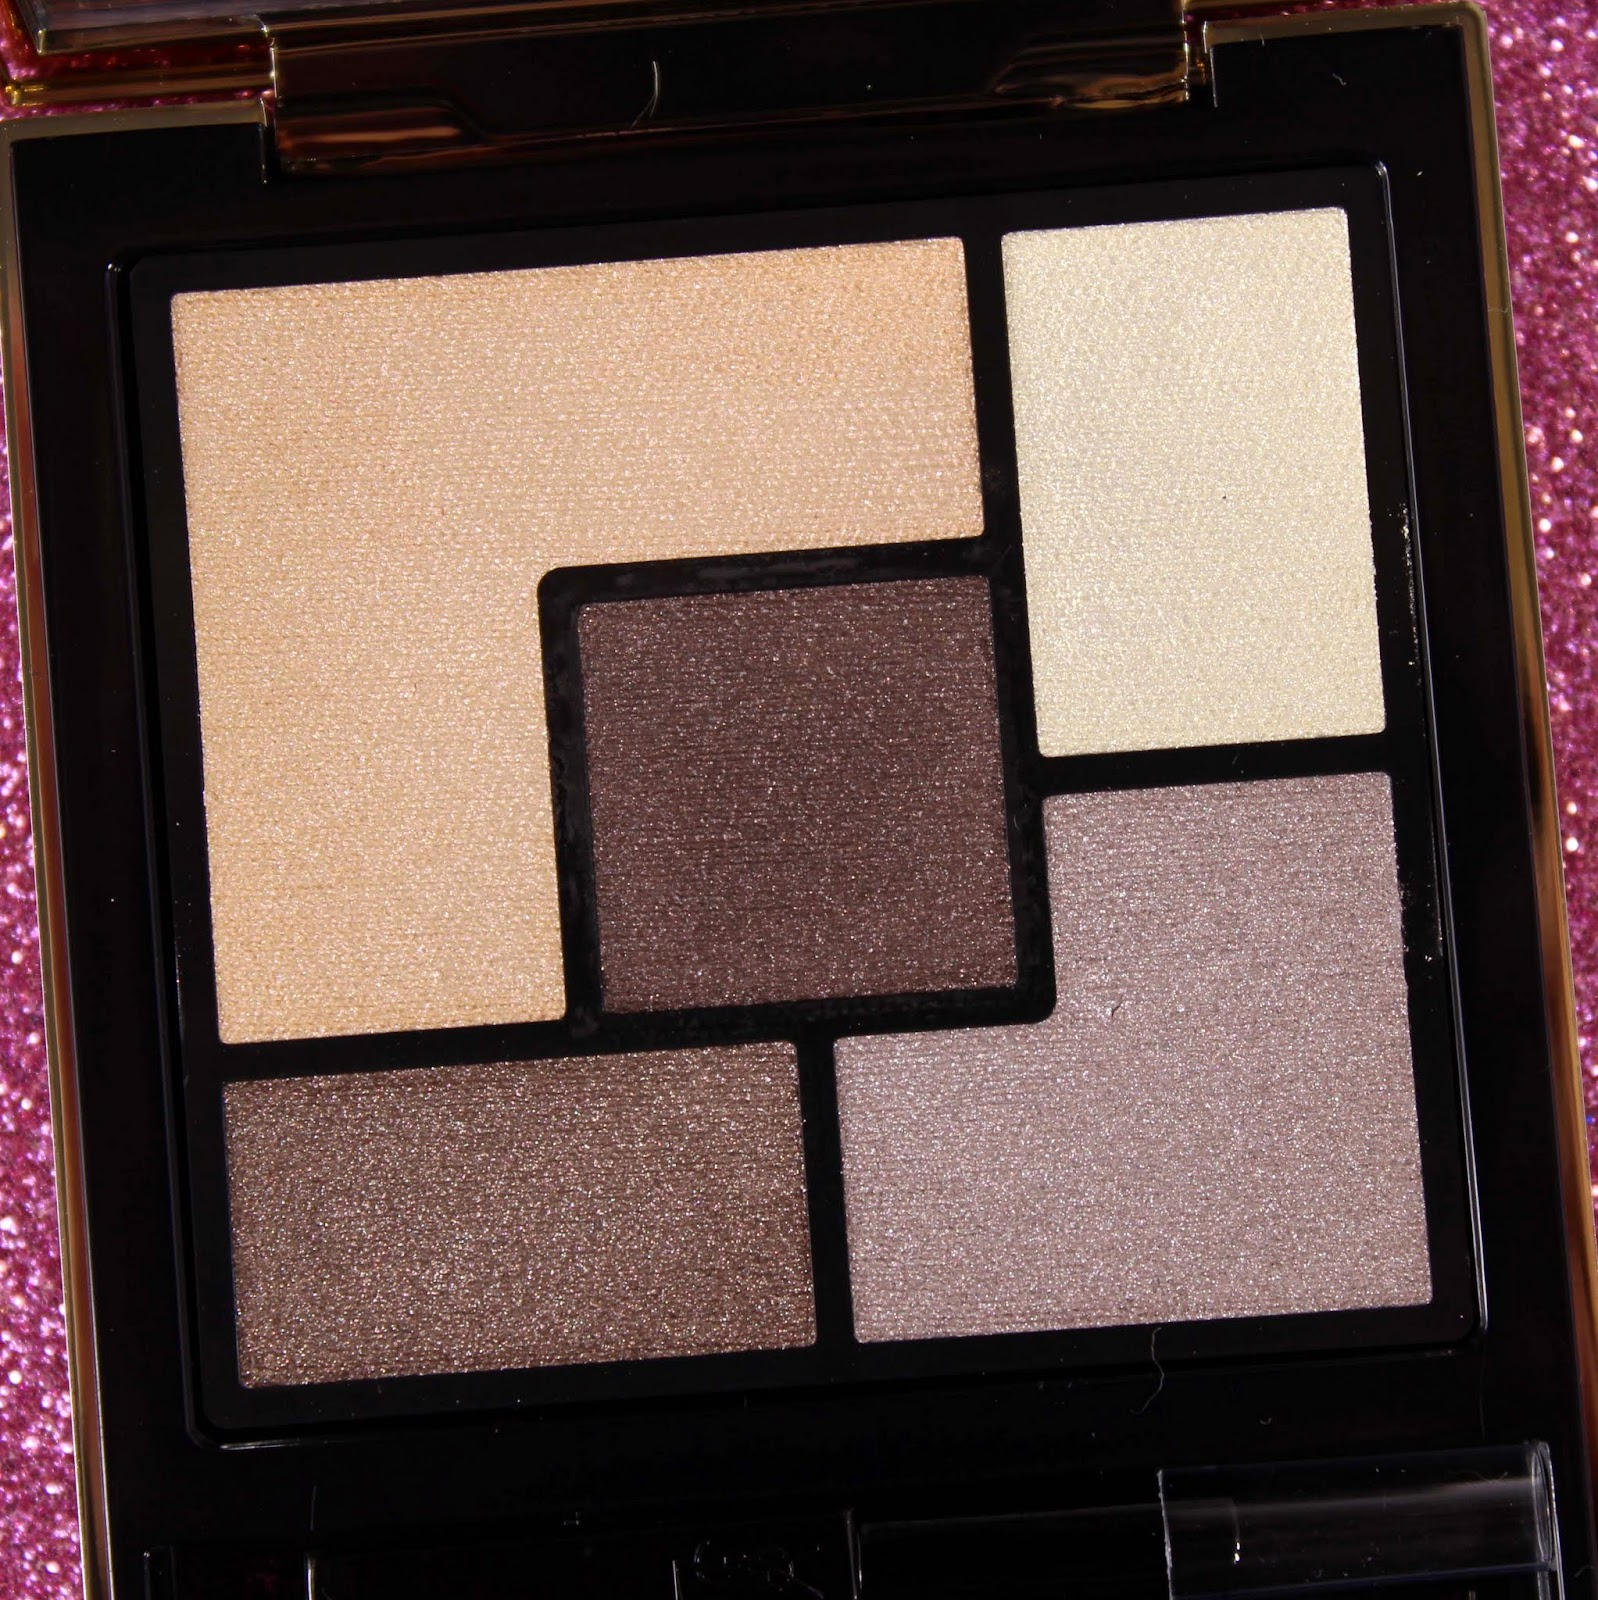 Ysl couture palette 4 saharienne swatches review lani loves ysl couture palette 4 saharienne swatches review ccuart Gallery